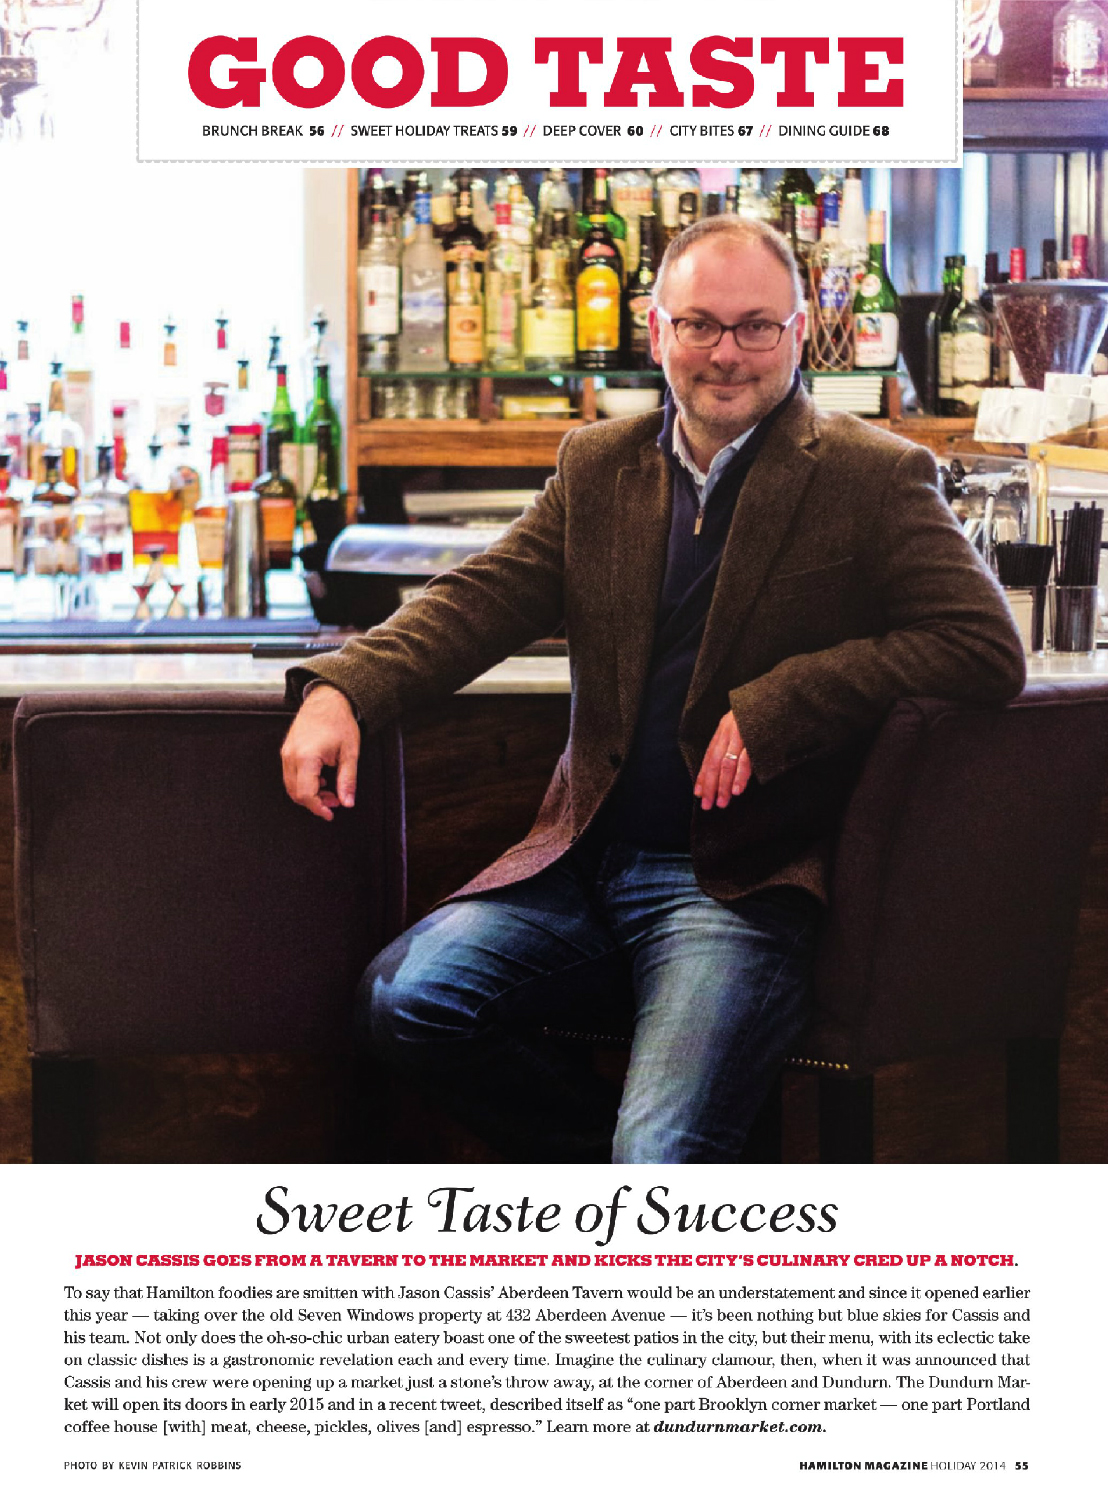 editorial-portrait-good-taste-guide-Jason-Cassis-Aberdeen-Tavern-Hamilton-Magazine-holiday-issue-2014-photo-by-Kevin-Patrick-Robbins.jpg